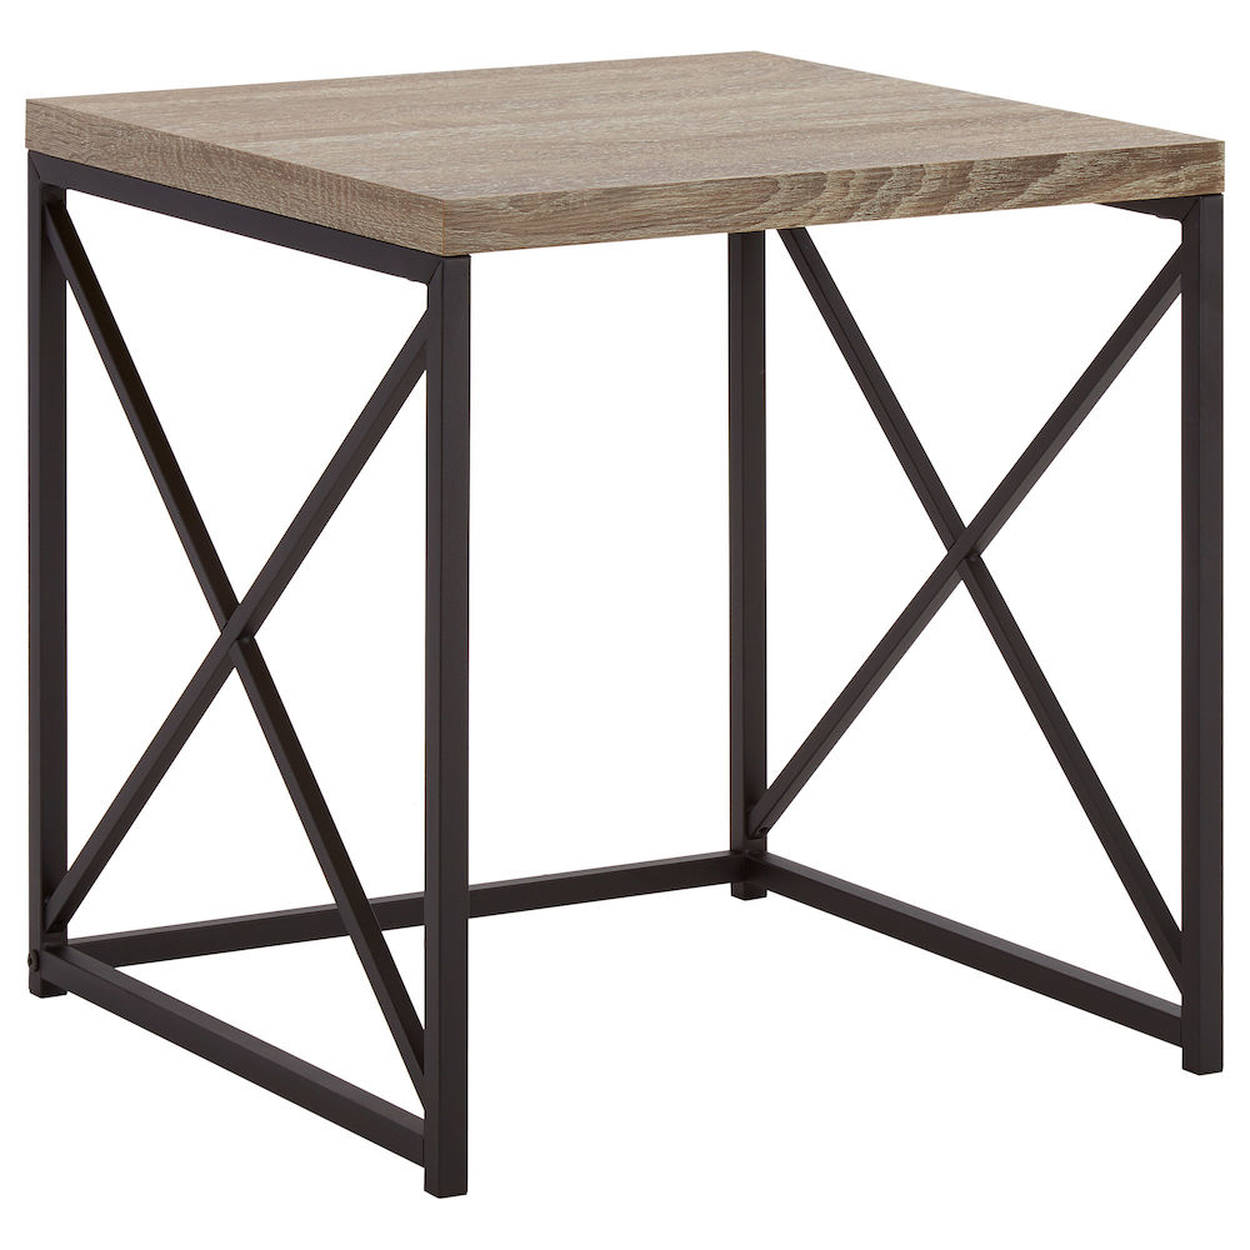 veneer and metal side table bouclair coffee tables end lamp size pallet dining chair nesting with storage cube black inch wide bedroom furniture minneapolis custom glass tops for